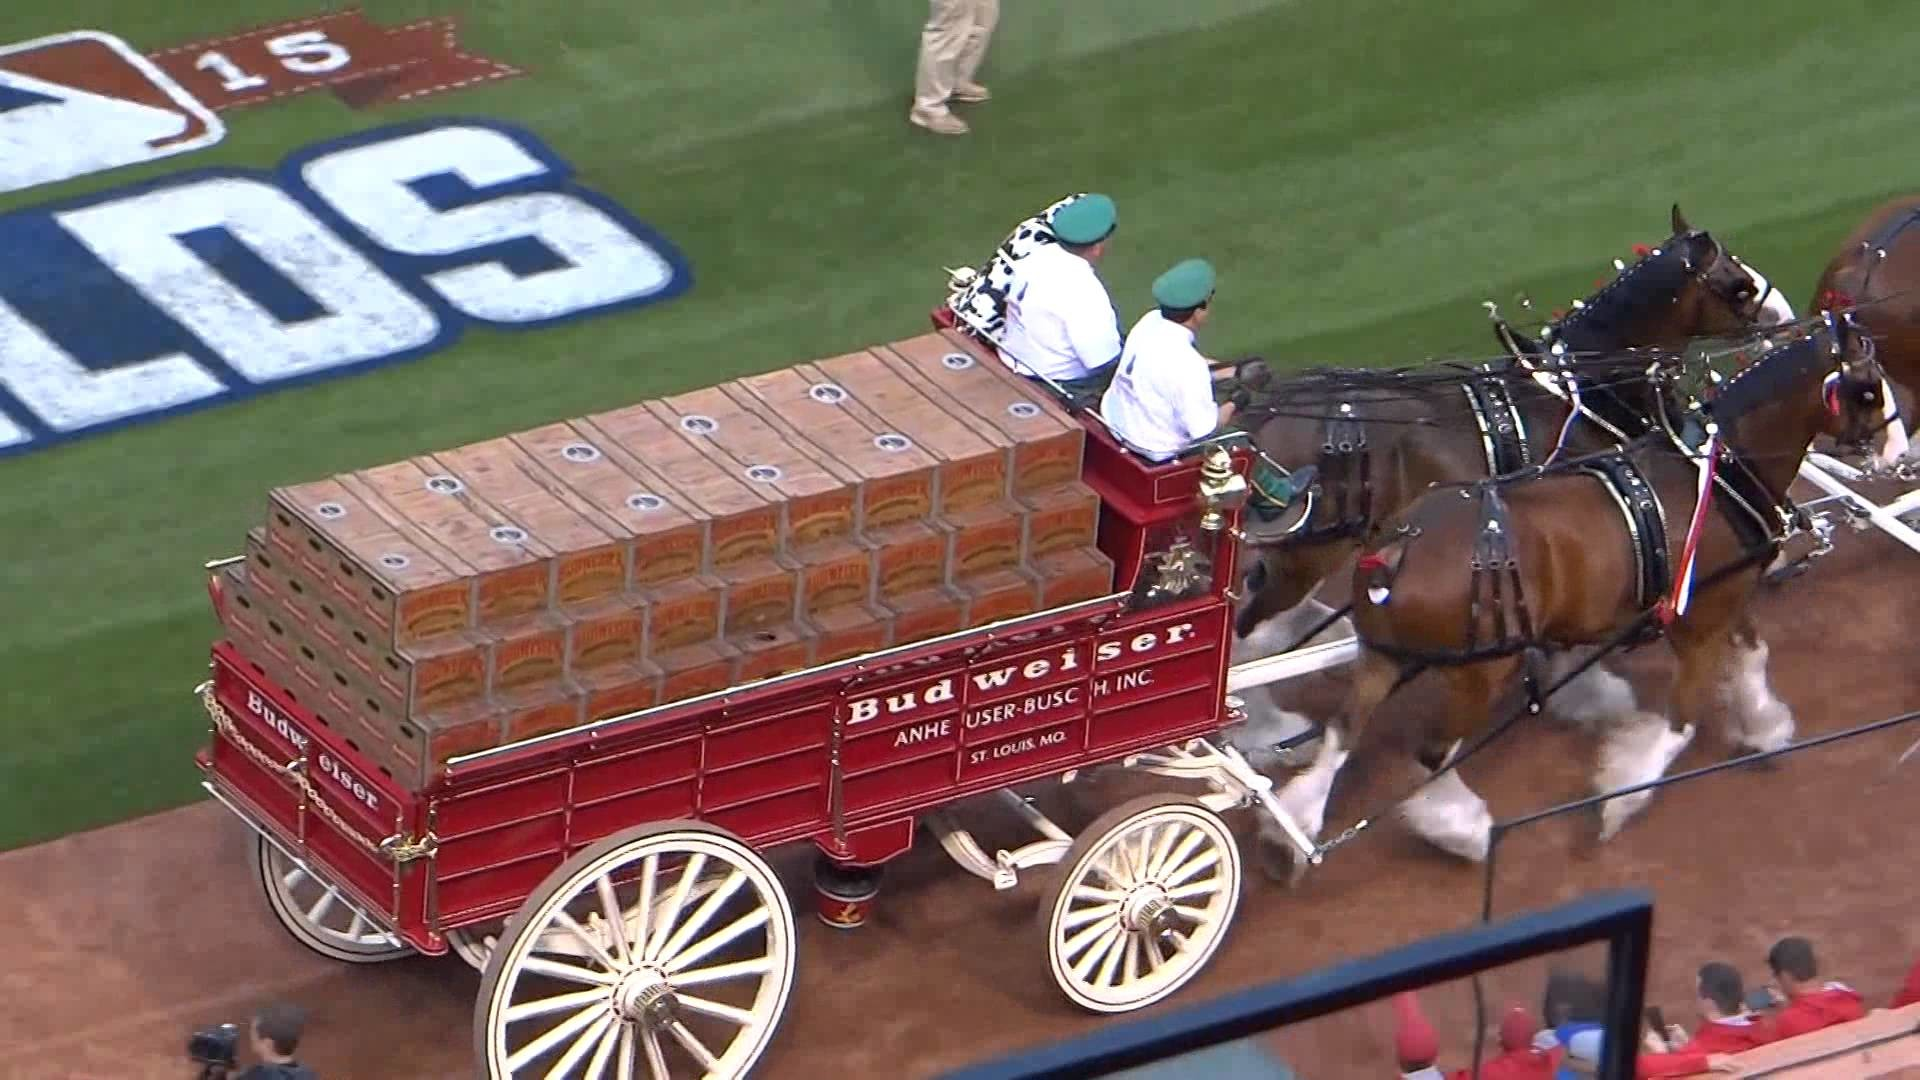 Res: 1920x1080, 2015 BUDWEISER CLYDESDALES BEFORE NLDS GAME #1 ST LOUIS CARDINALS VS  CHICAGO CUBS PLAYOFF GAME